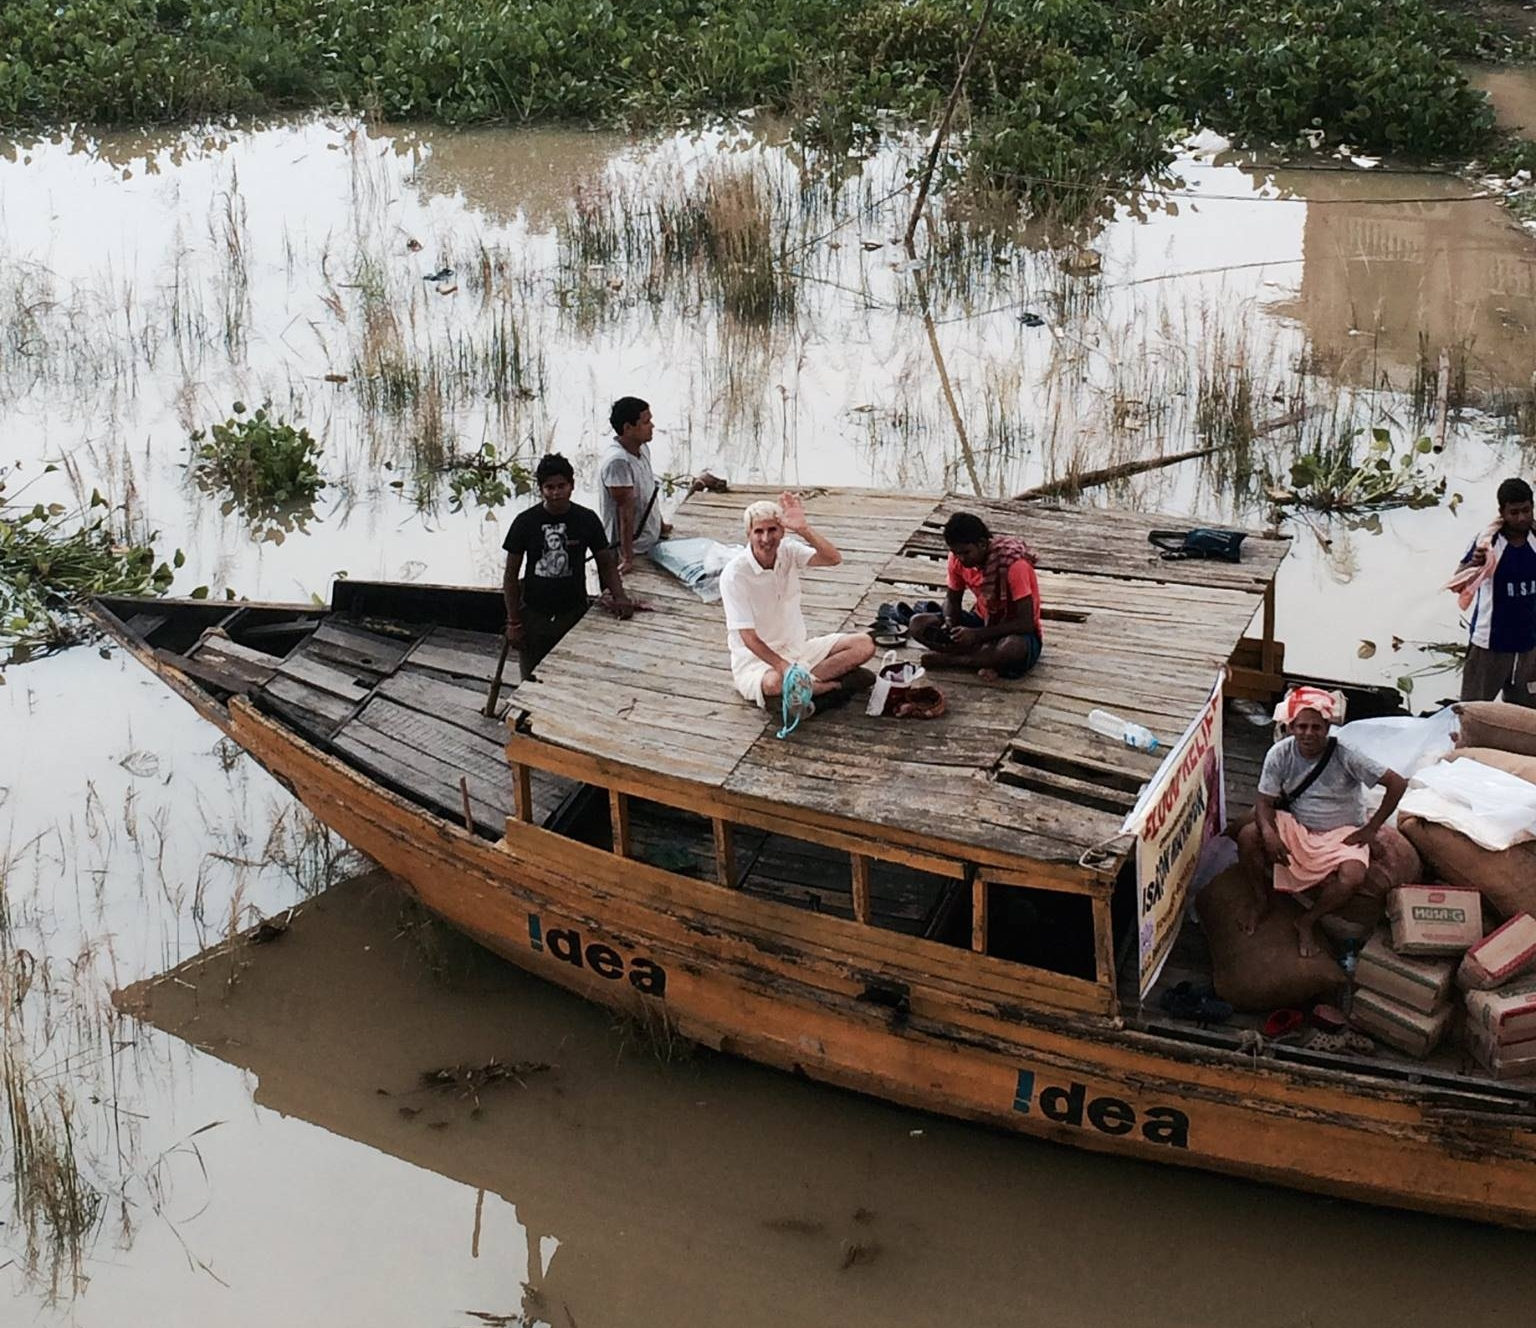 Jay helping delivery food to villagers stranded  due to flooding in India.